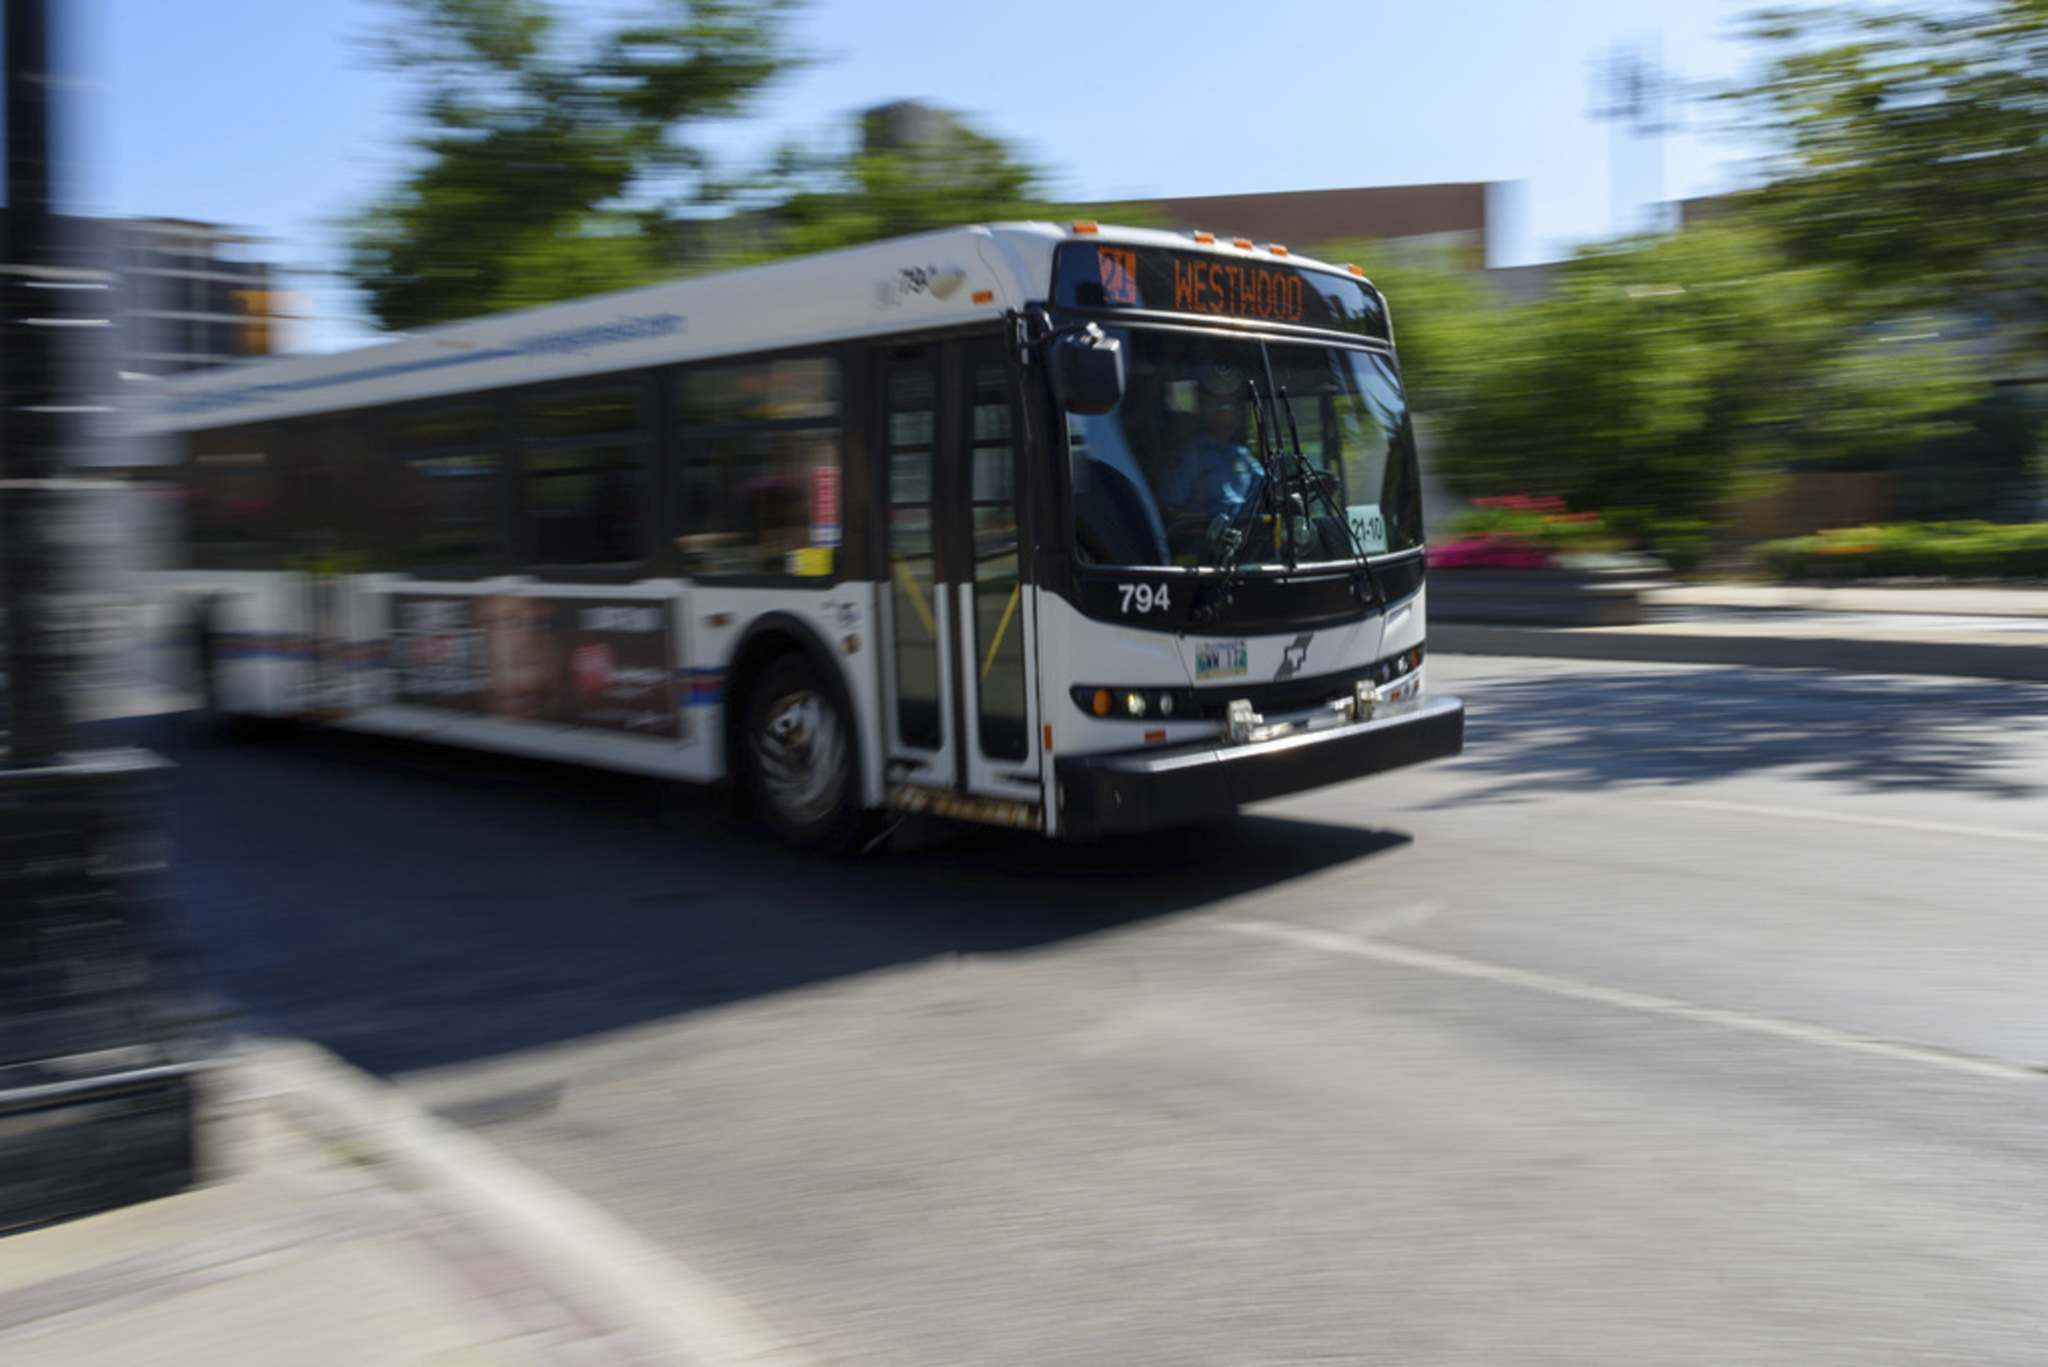 JESSE BOILY / WINNIPEG FREE PRESS FILES</p><p>Winnipeg City Council's public works committee voted Tuesday in favour of the overall Winnipeg Transit Master Plan, which aims to redraw most bus routes, add some zero-emission vehicles, and expand rapid transit by 2045.</p>